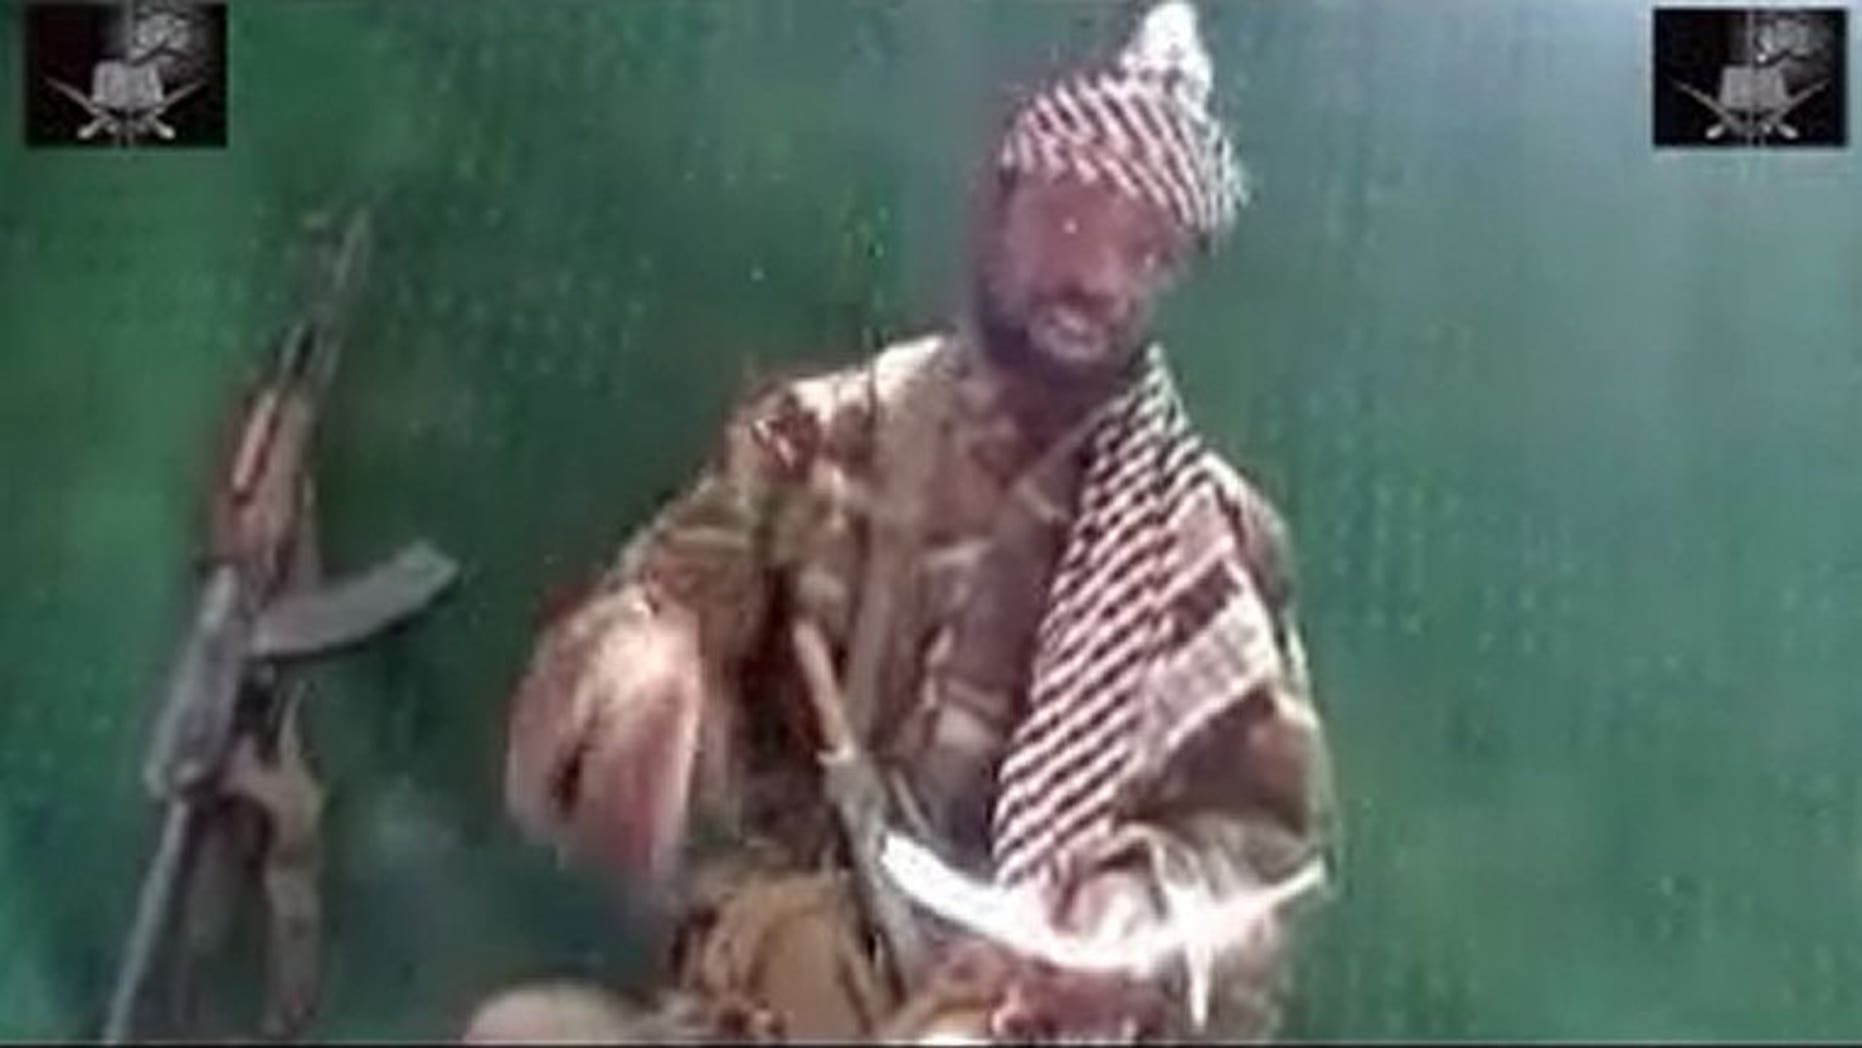 Picture taken May 29, 2013 from a video obtained by AFP shows the leader of the Islamist extremist group Boko Haram Abubakar Shekau. In a ten-minute video delivered to AFP Saturday, Shekau said he supported a July 6 attack on a school that killed 42 people, but did not claim responsibility for the massacre,